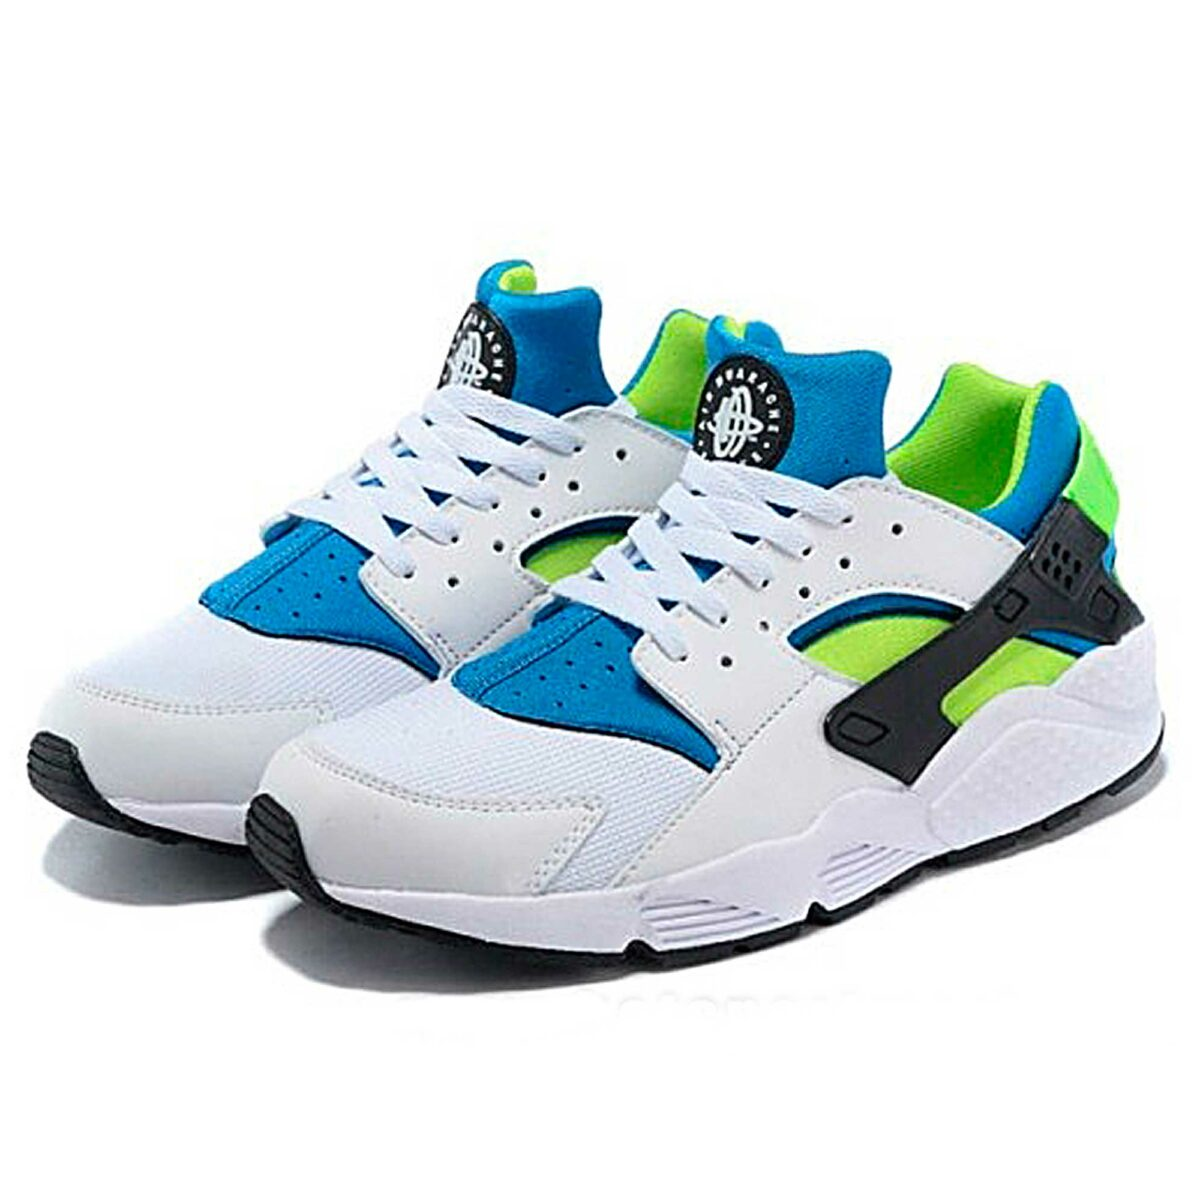 nike air huarache scream green 318429_100 купить